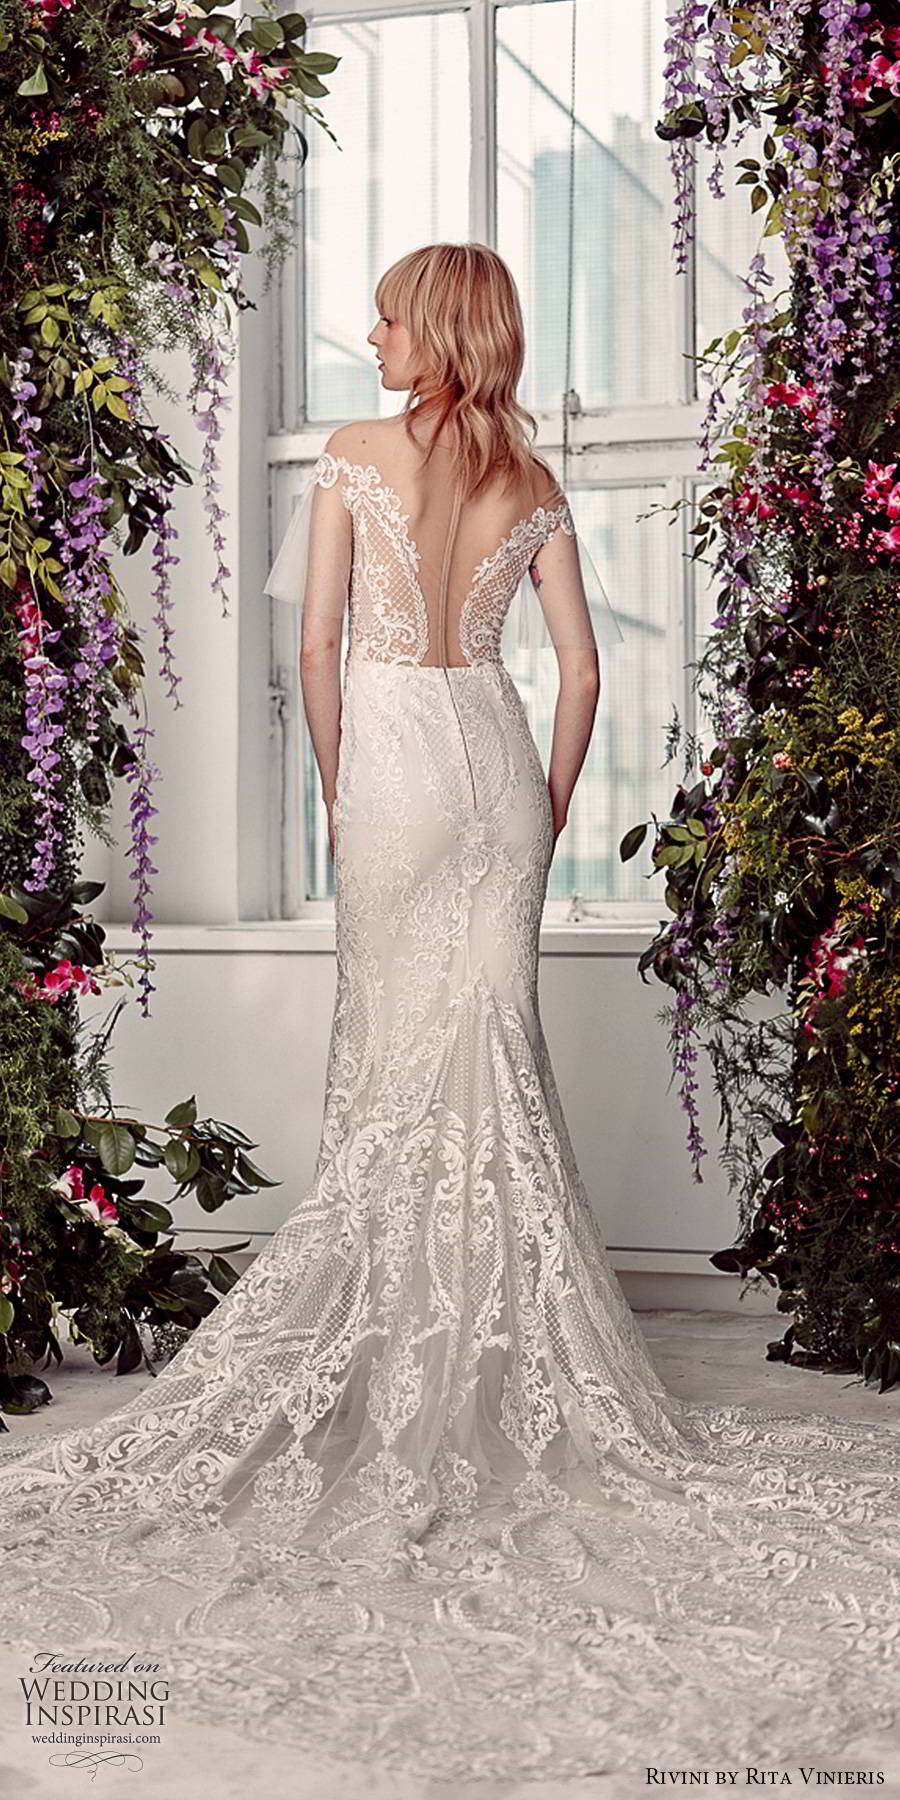 rivini by rita vinieris spring 2020 bridal sheer butterfly sleeves off shoulder straight across neckline fully embellished lace elegant sheath wedding dress illusion back chapel train (3) bv